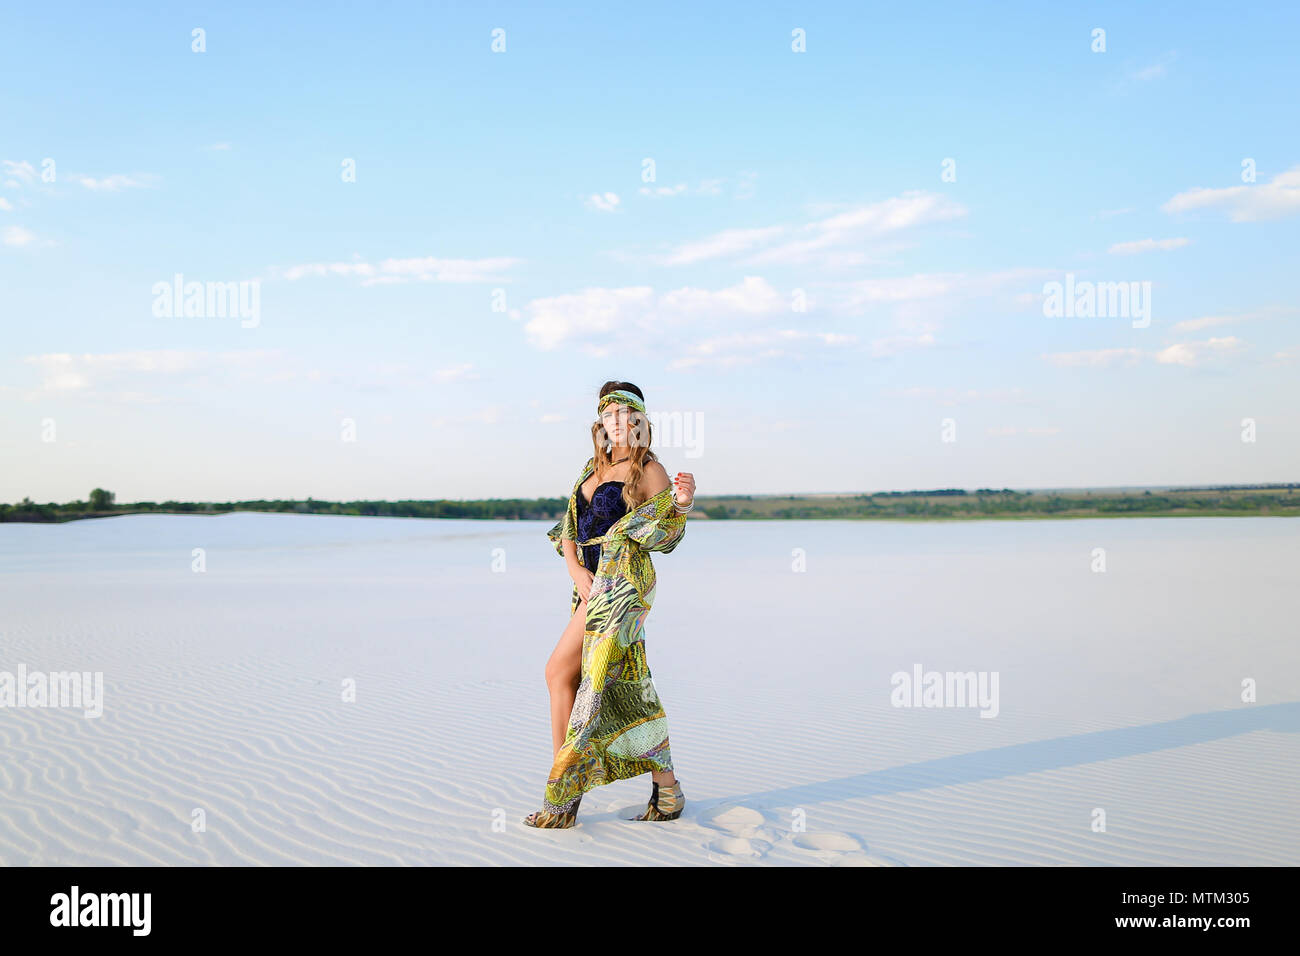 Young female person wearing swimsuit and green beach robe standi - Stock Image